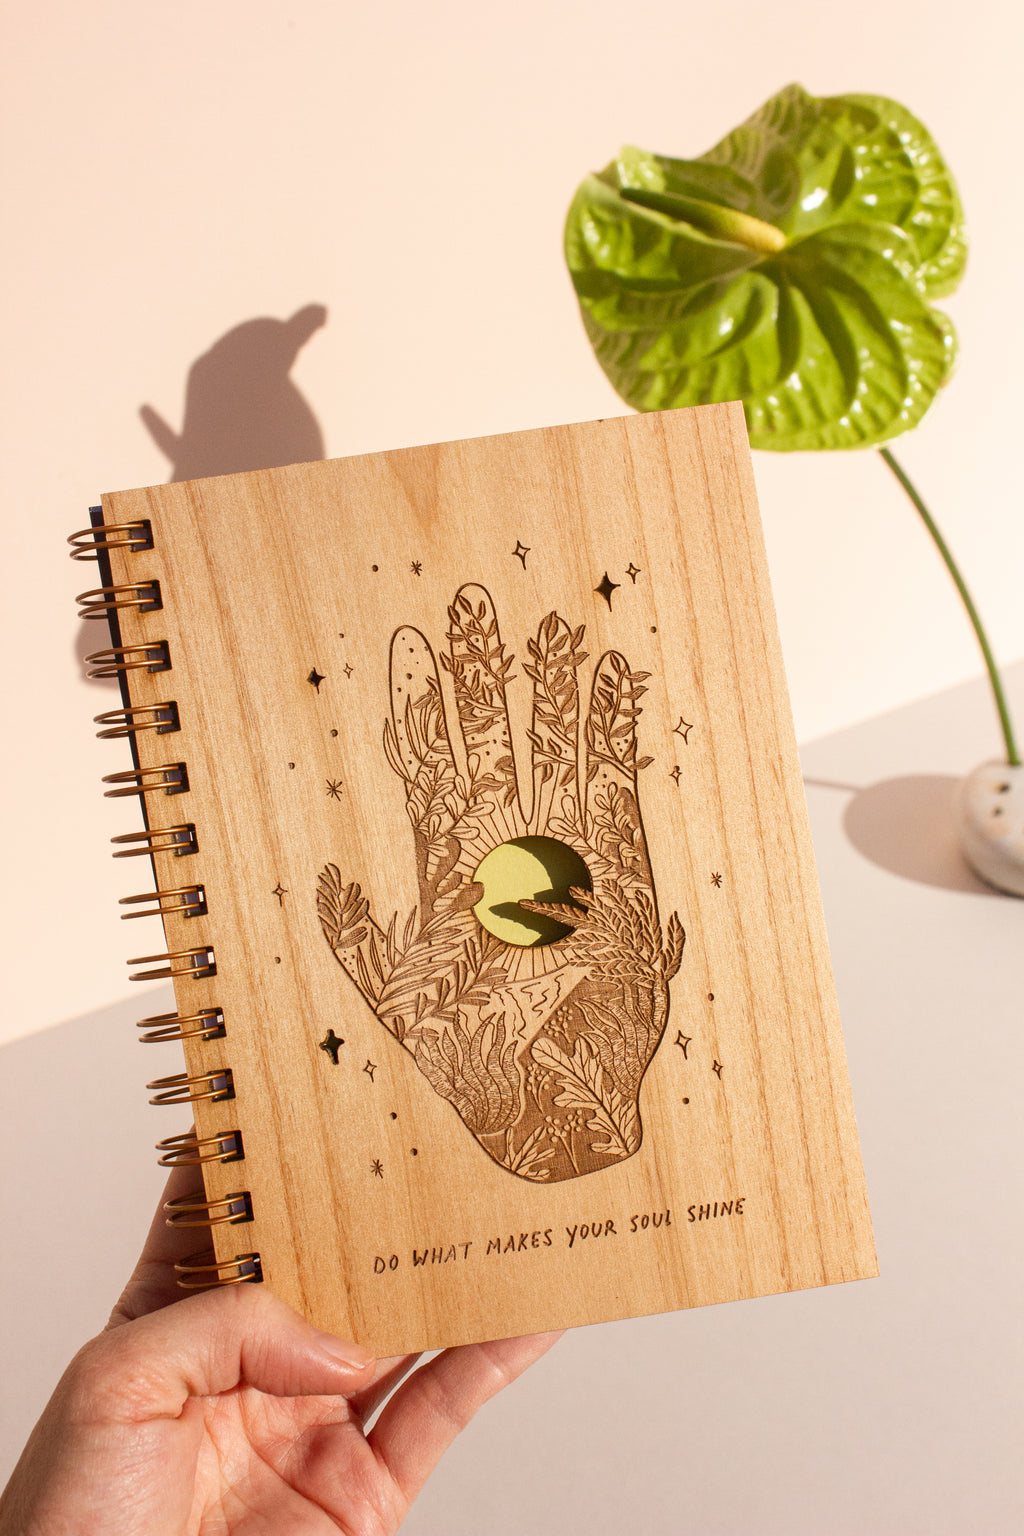 Let Your Soul Shine Handmade Journal